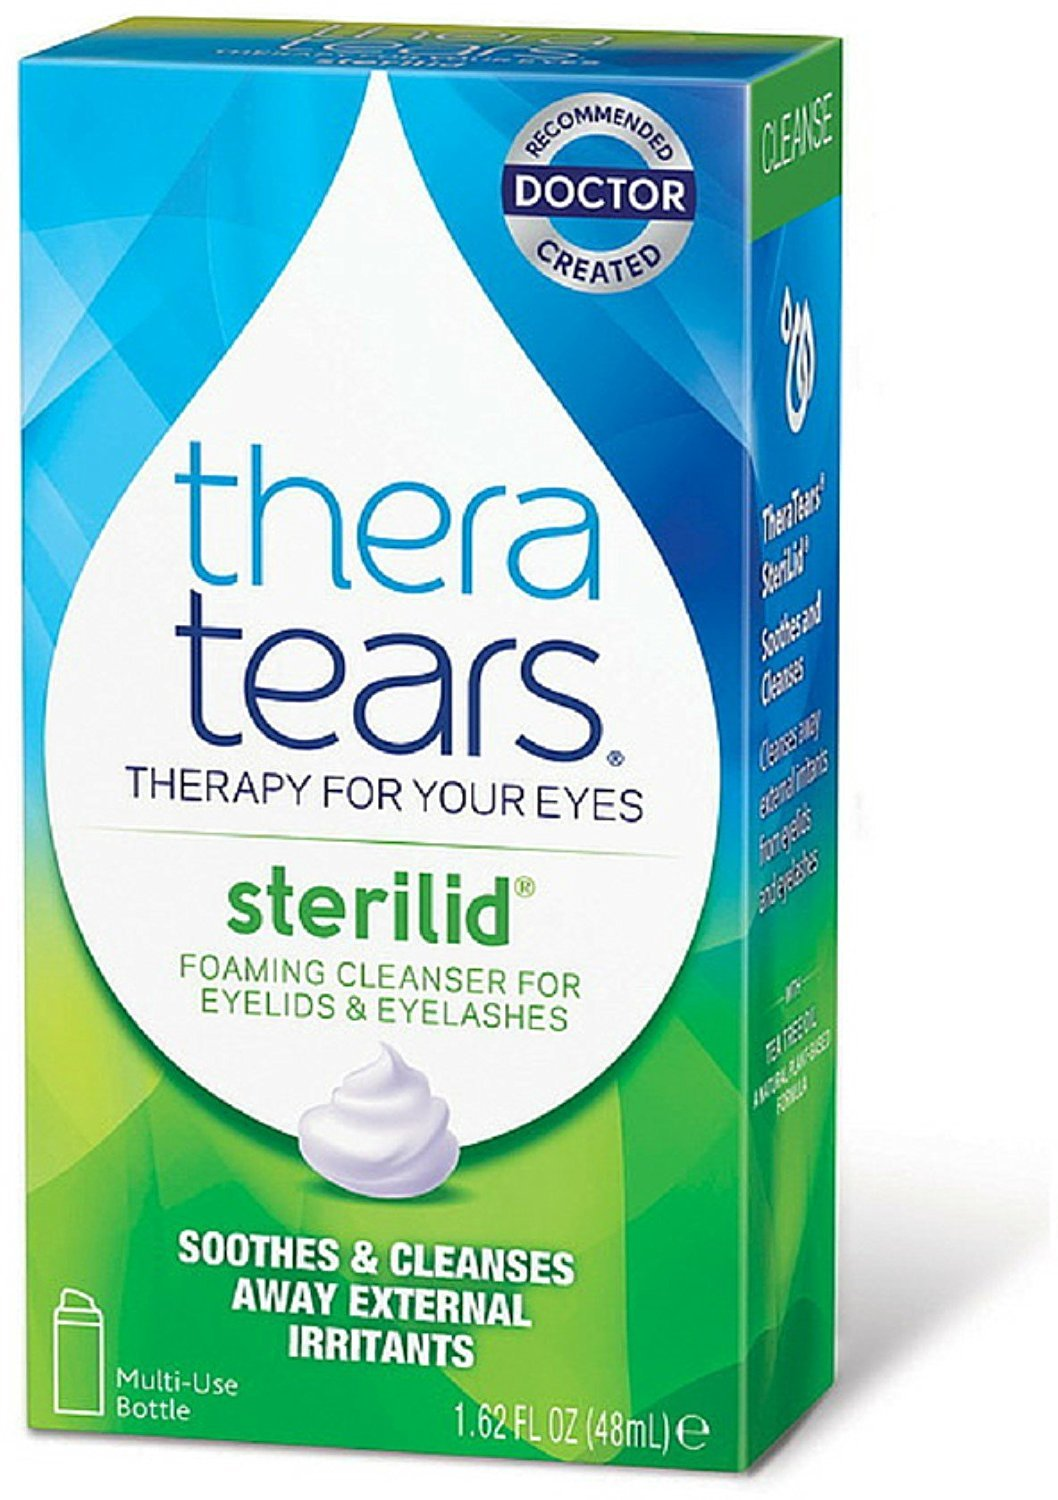 Theratears Sterilid Reviews recommendations